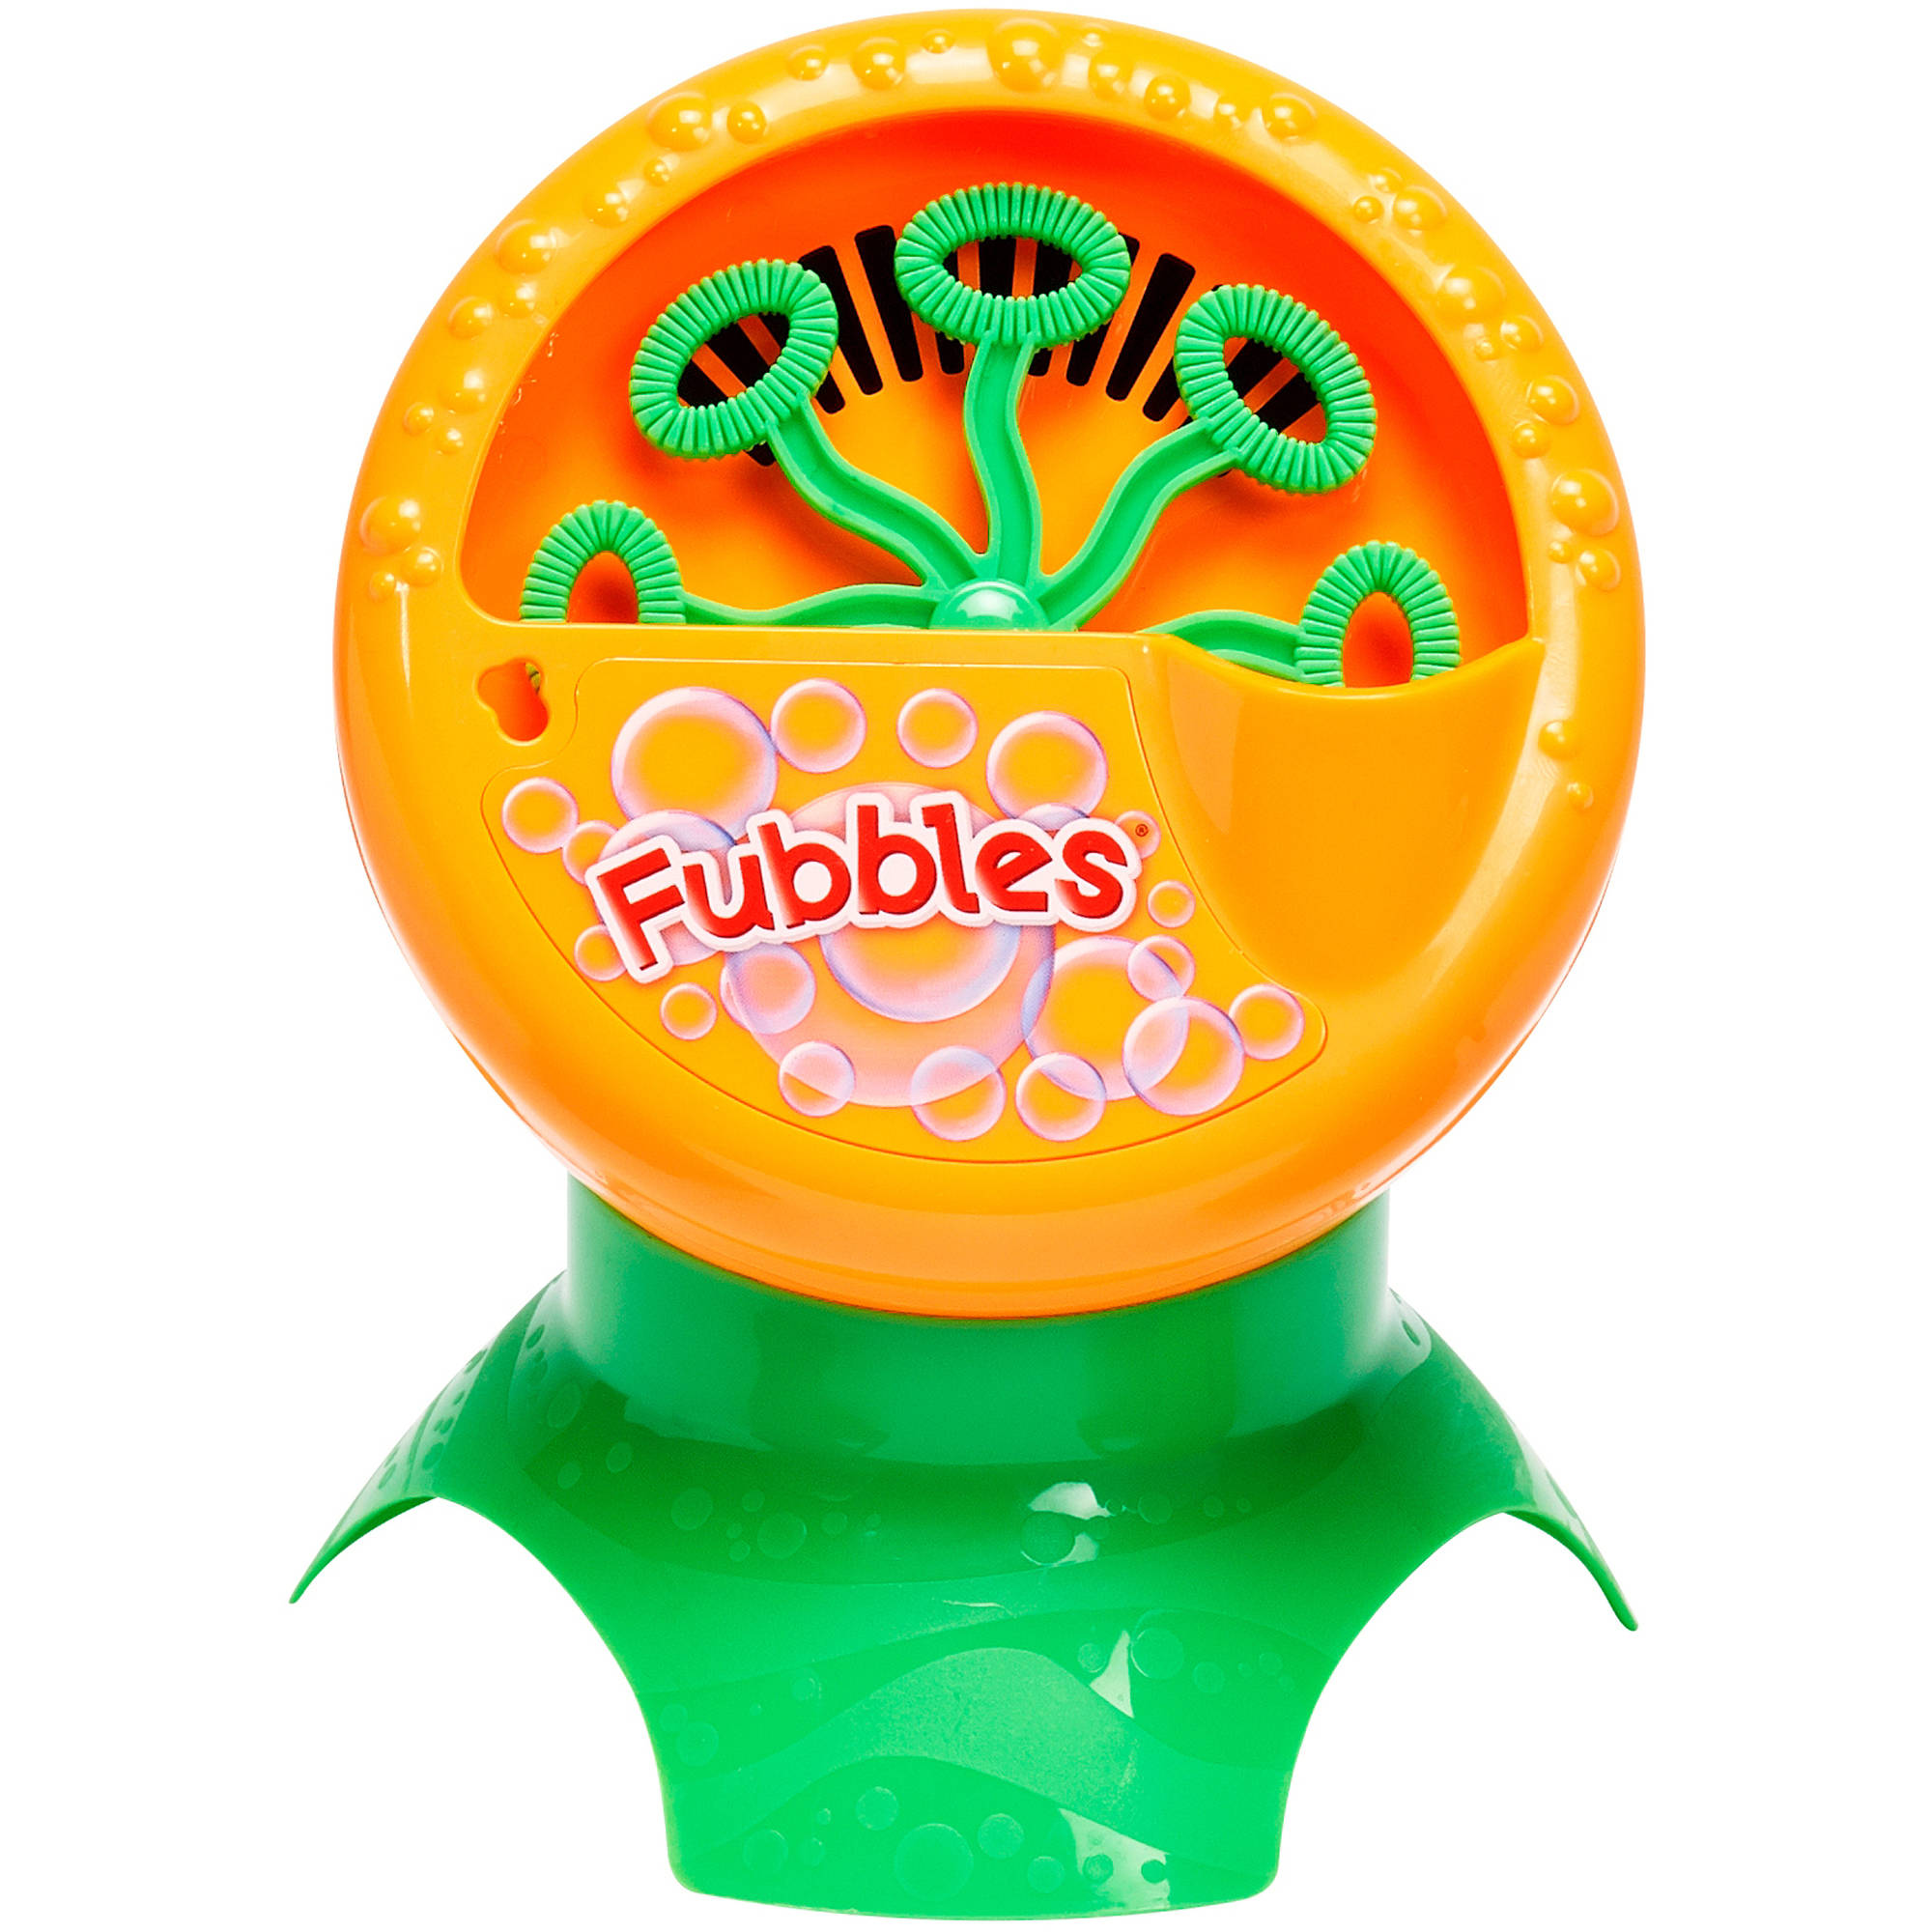 Little Kids Fubbles Bubble Blastin' Machine, Orange